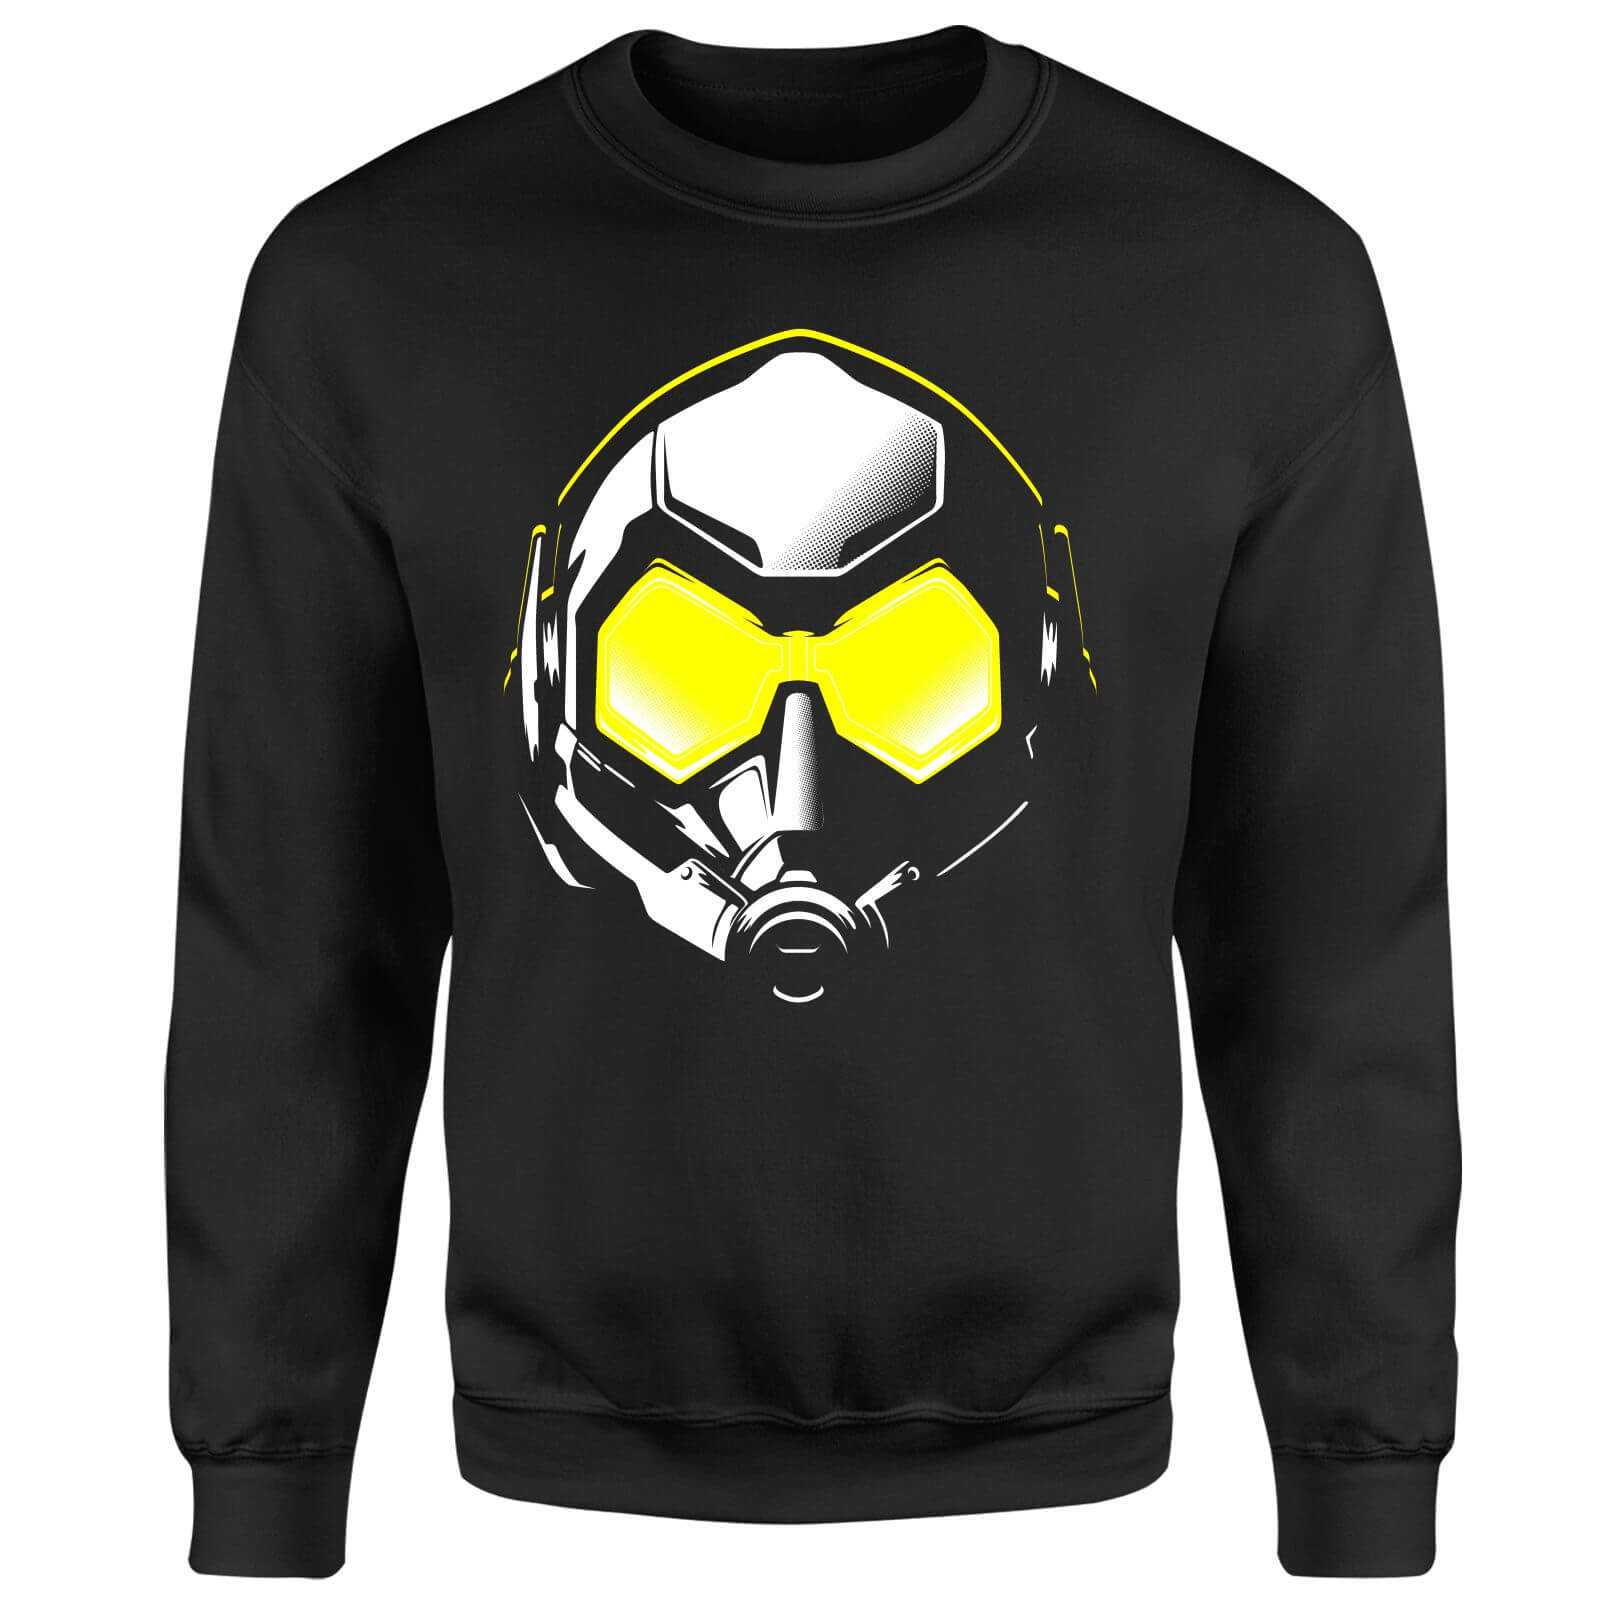 Ant-Man And The Wasp Hope Mask Sweatshirt - Black